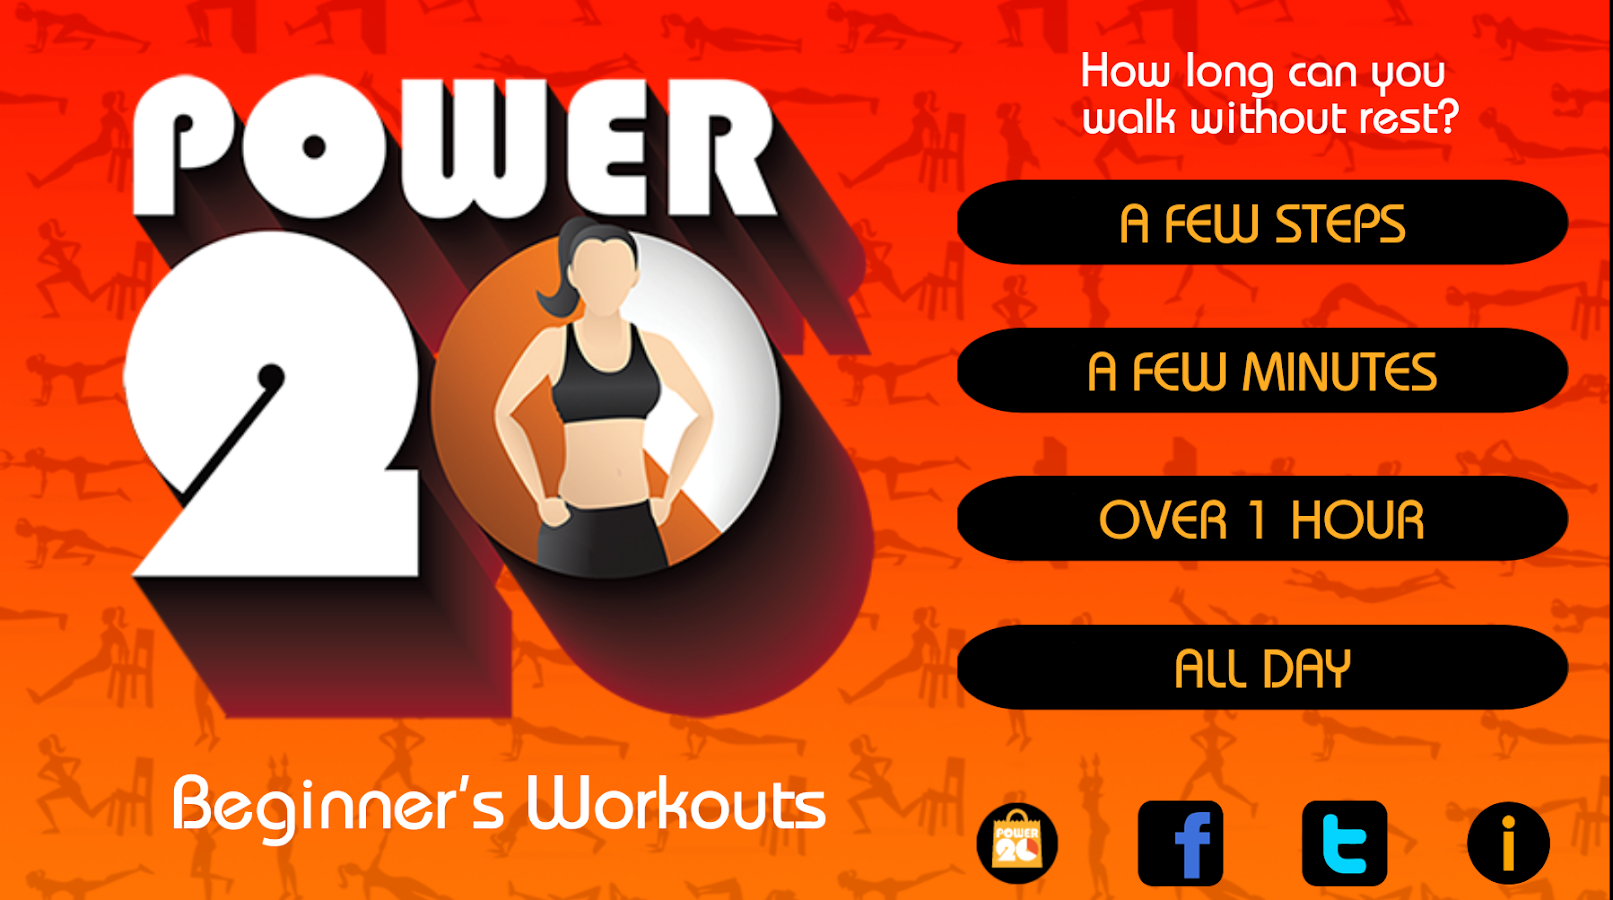 20 Minute Beginners Workout Screenshot